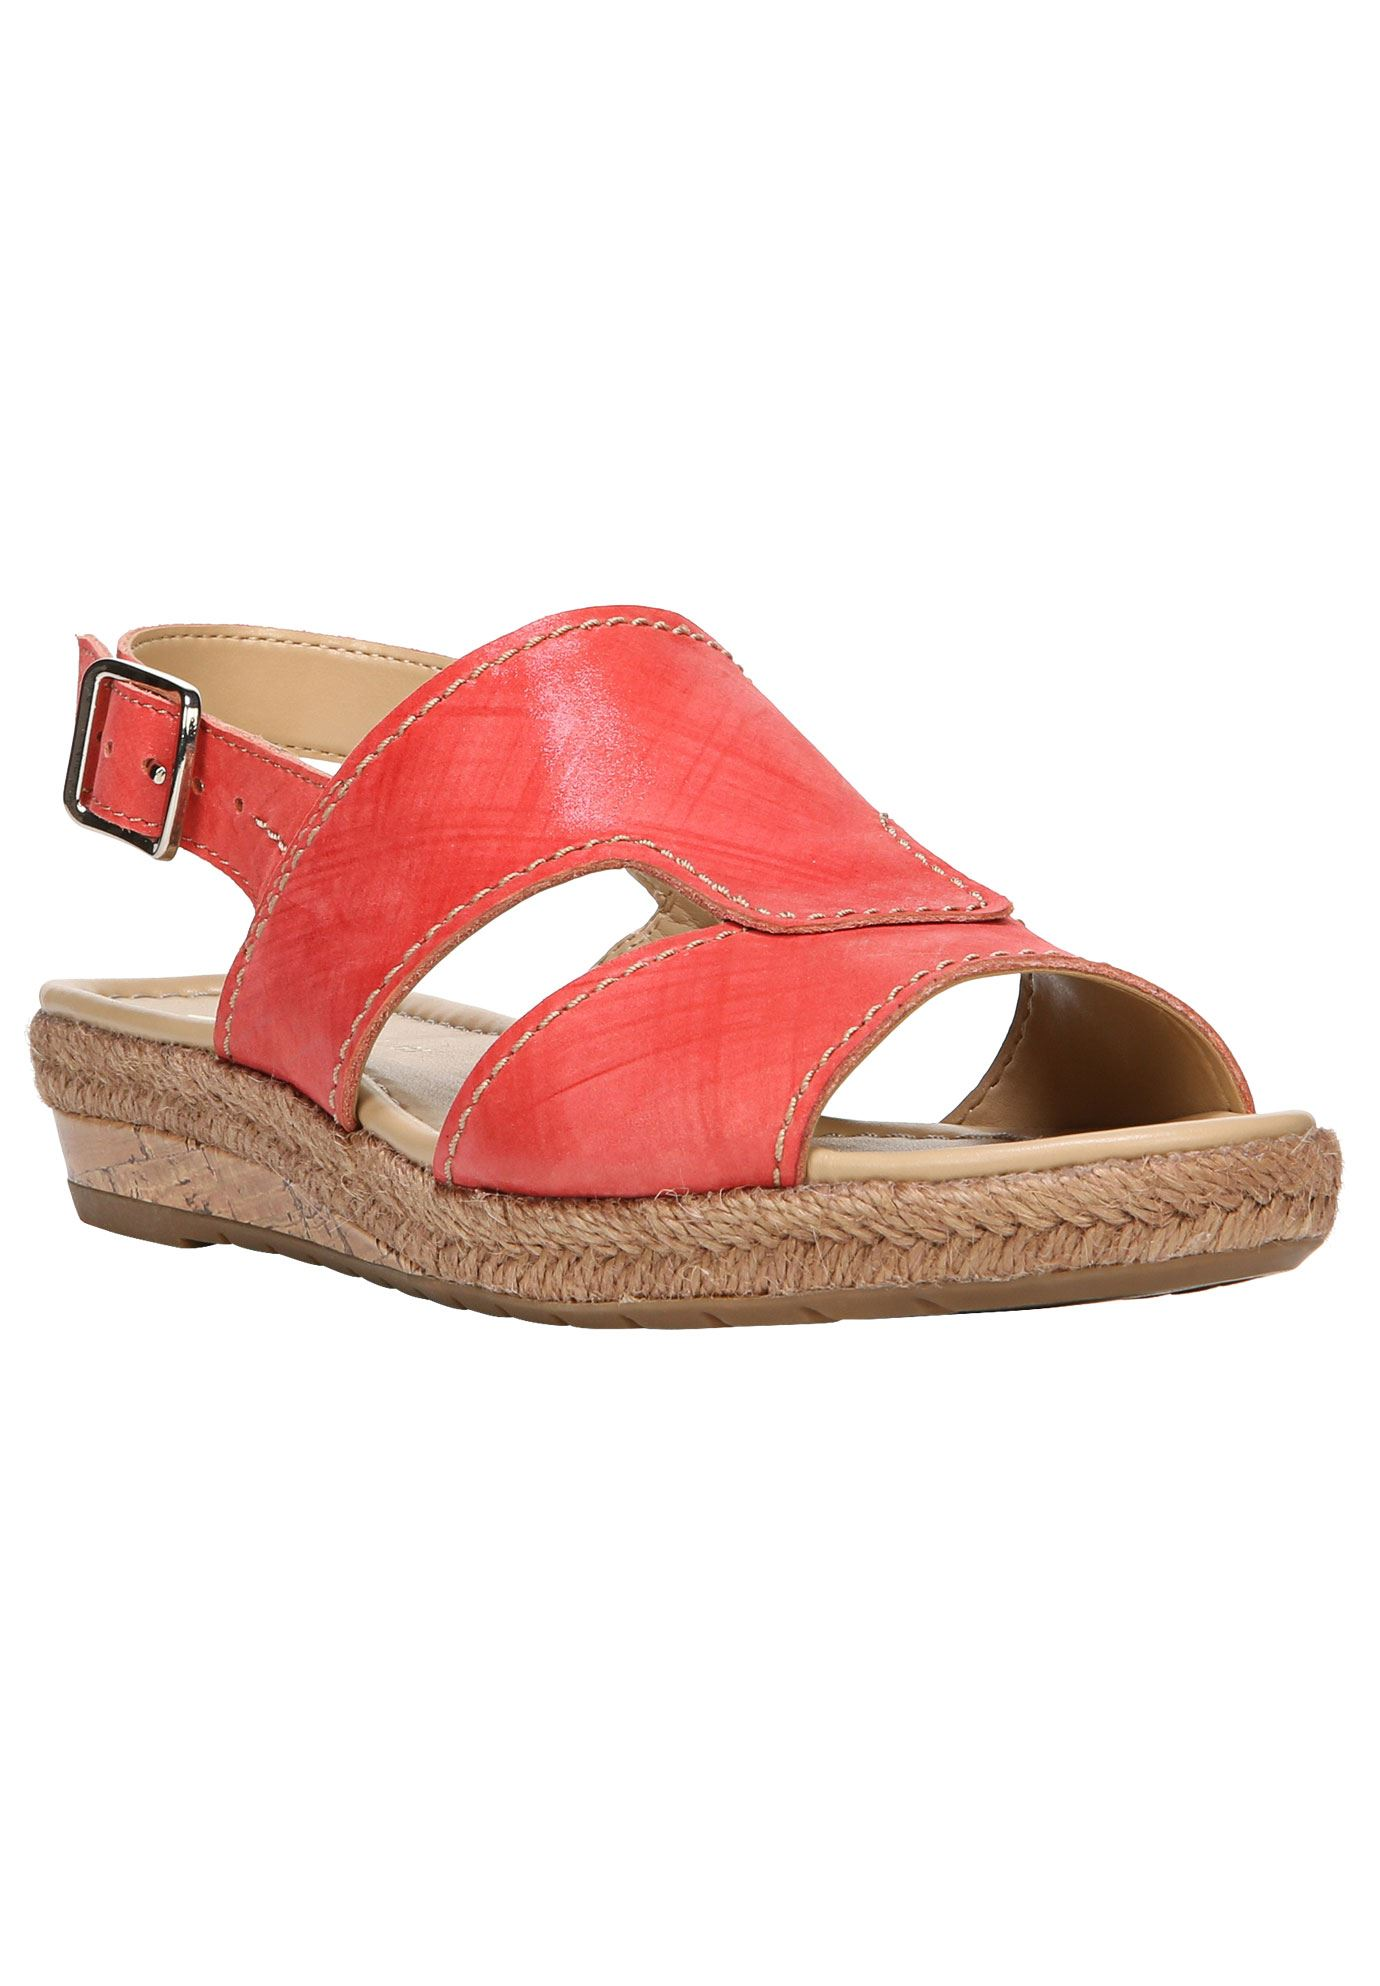 Reese Sandals by Naturalizer®,